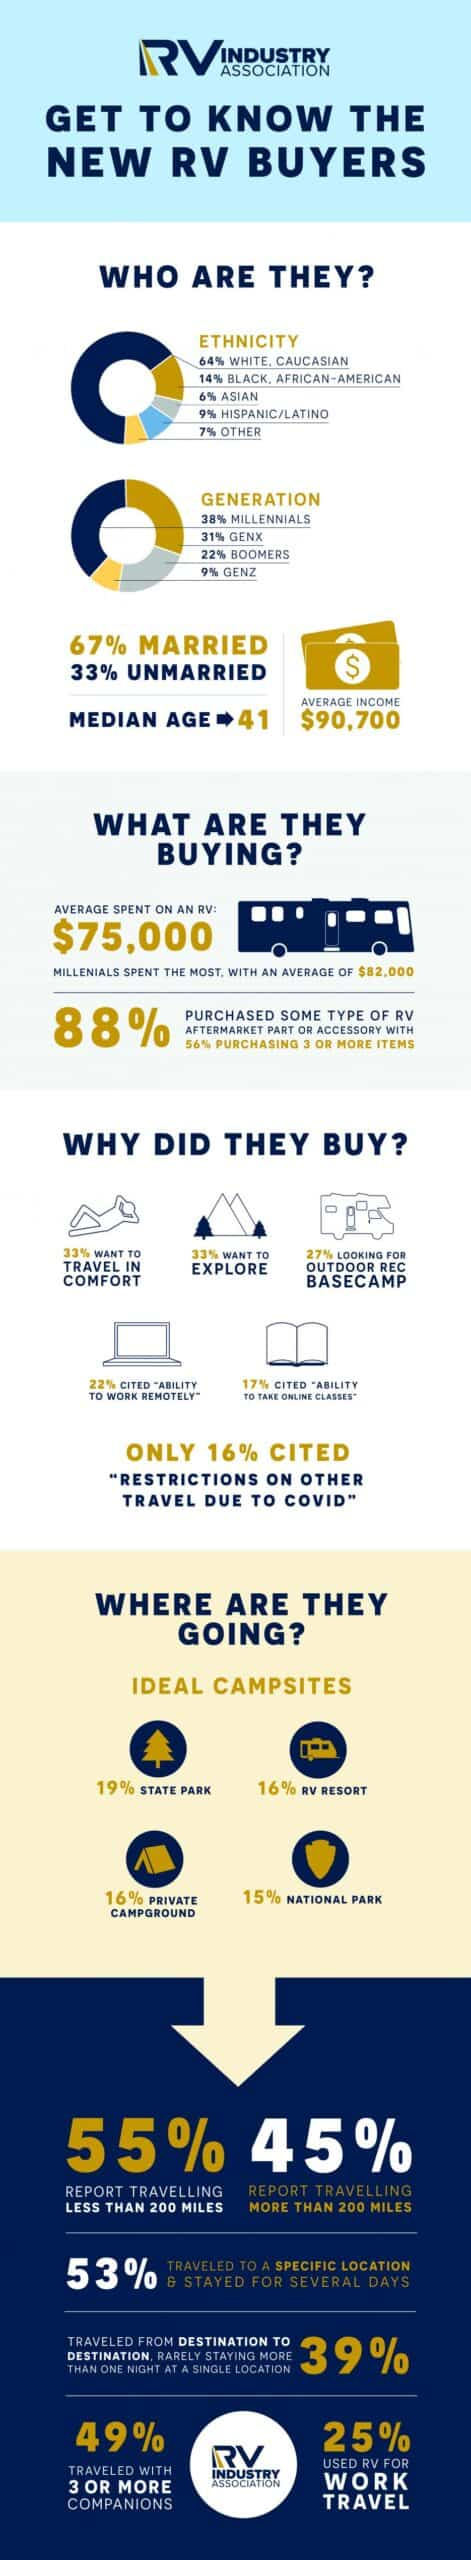 Infographic of new RV buyers, what they spend on an RV and why they made the purchases